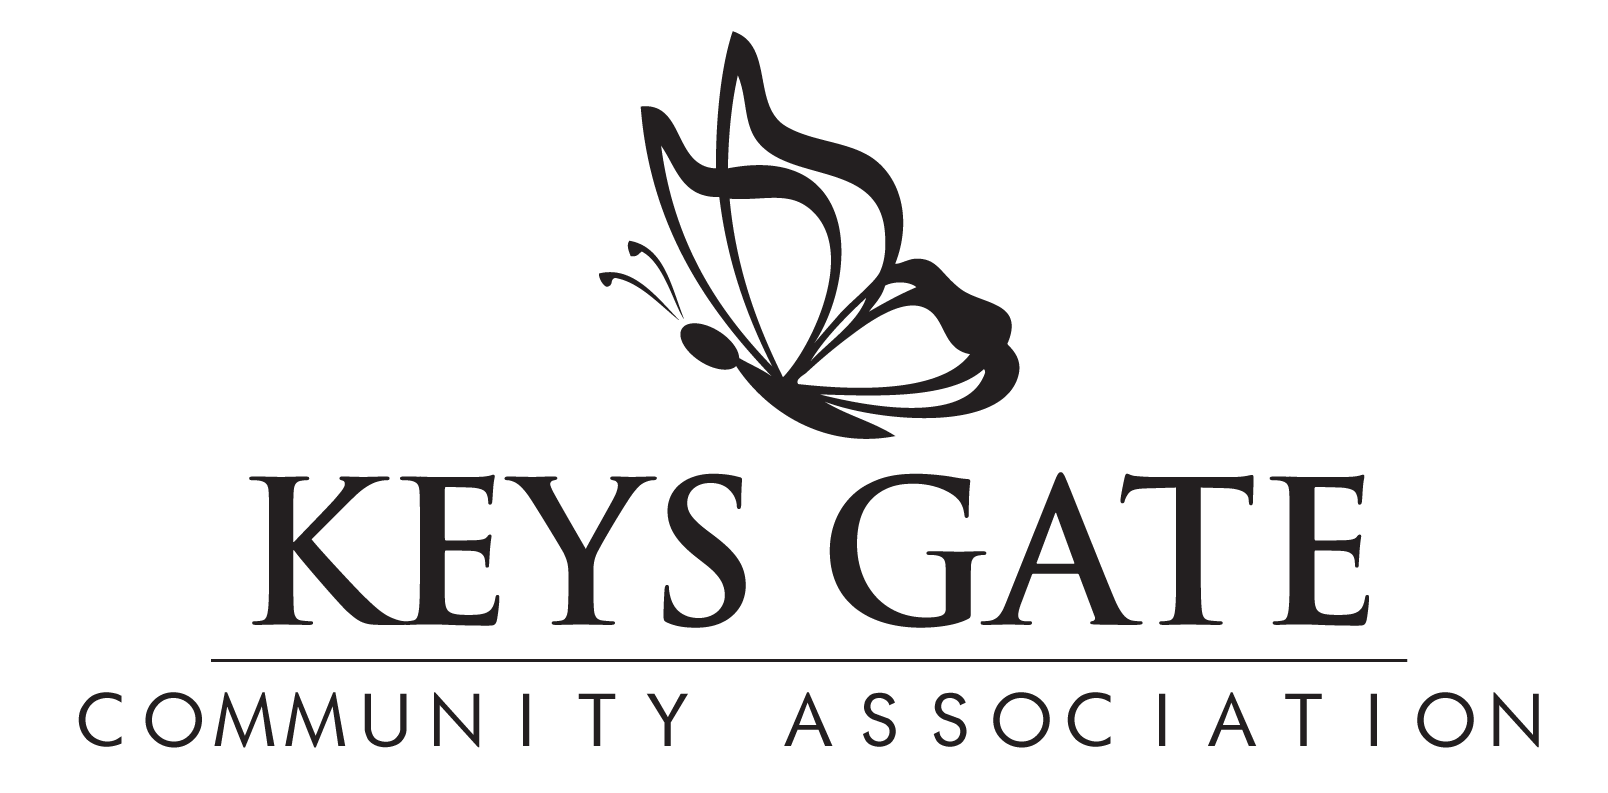 Keys Gate Community Association